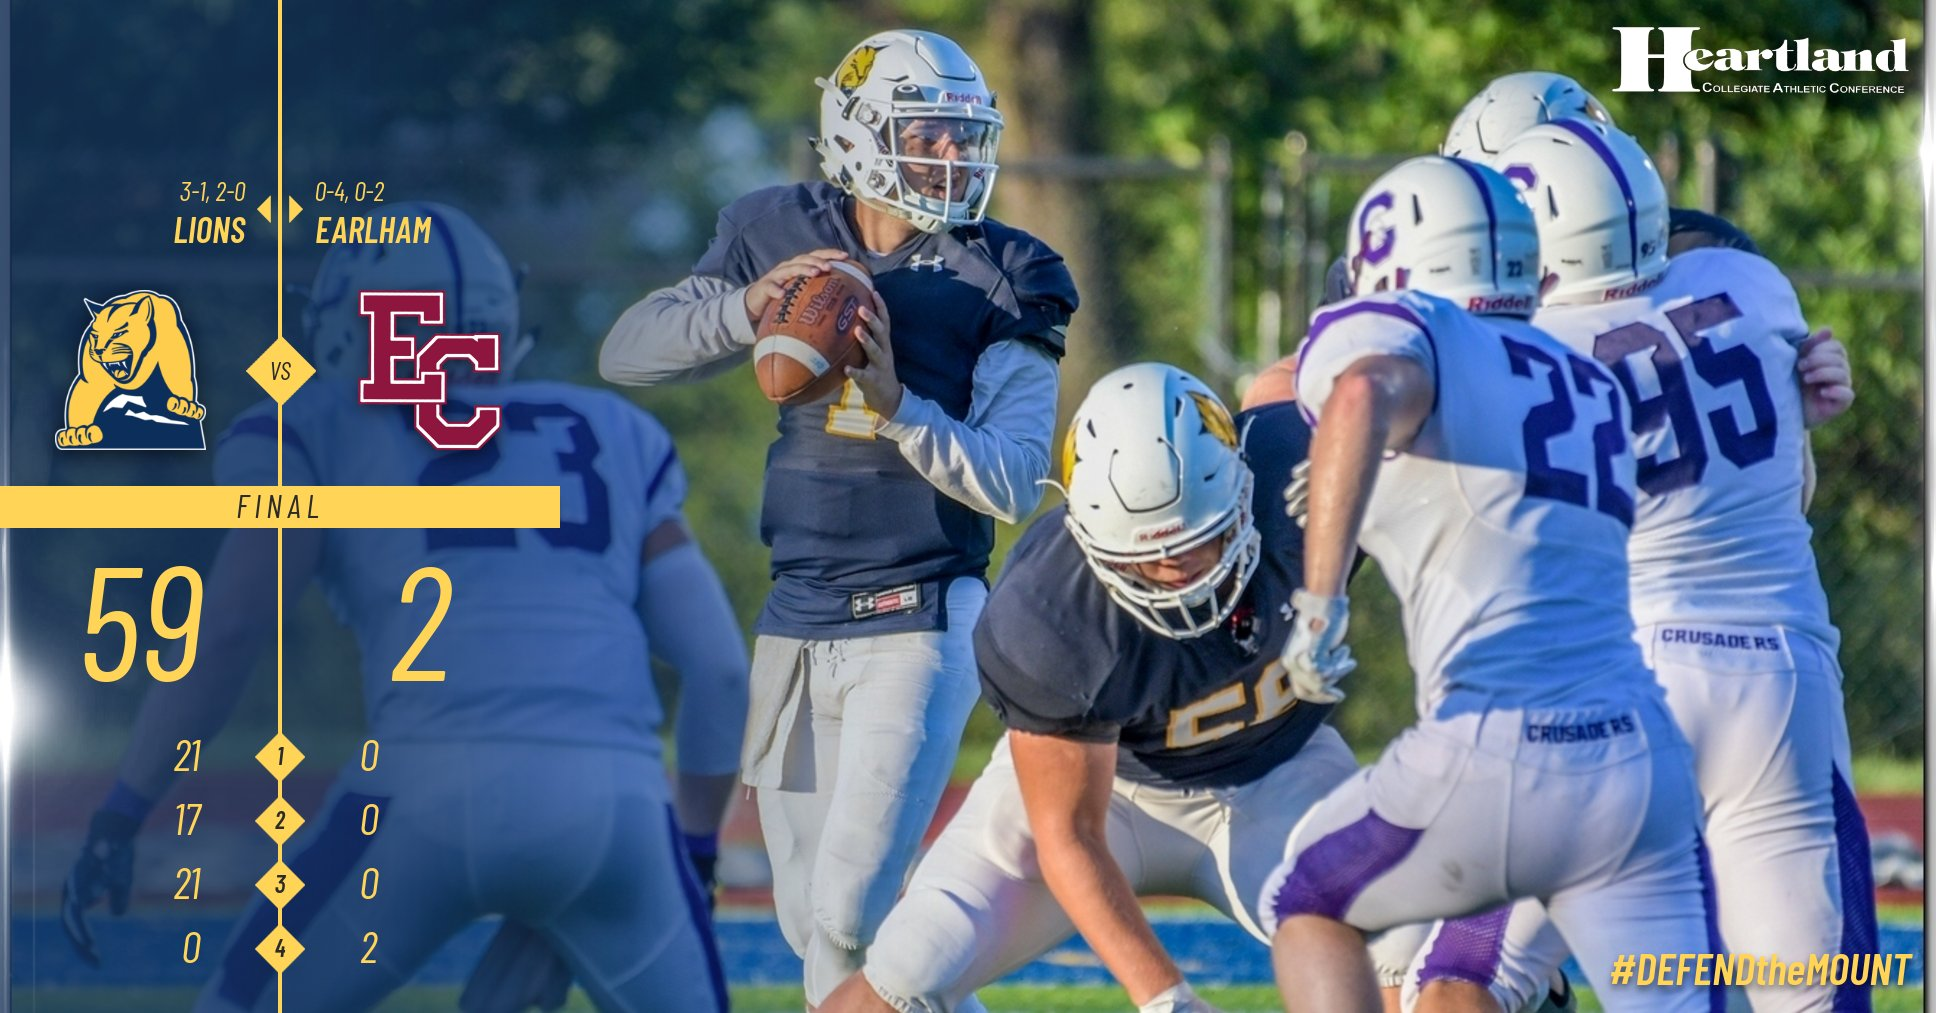 The Mount football team dominant in win over Earlham